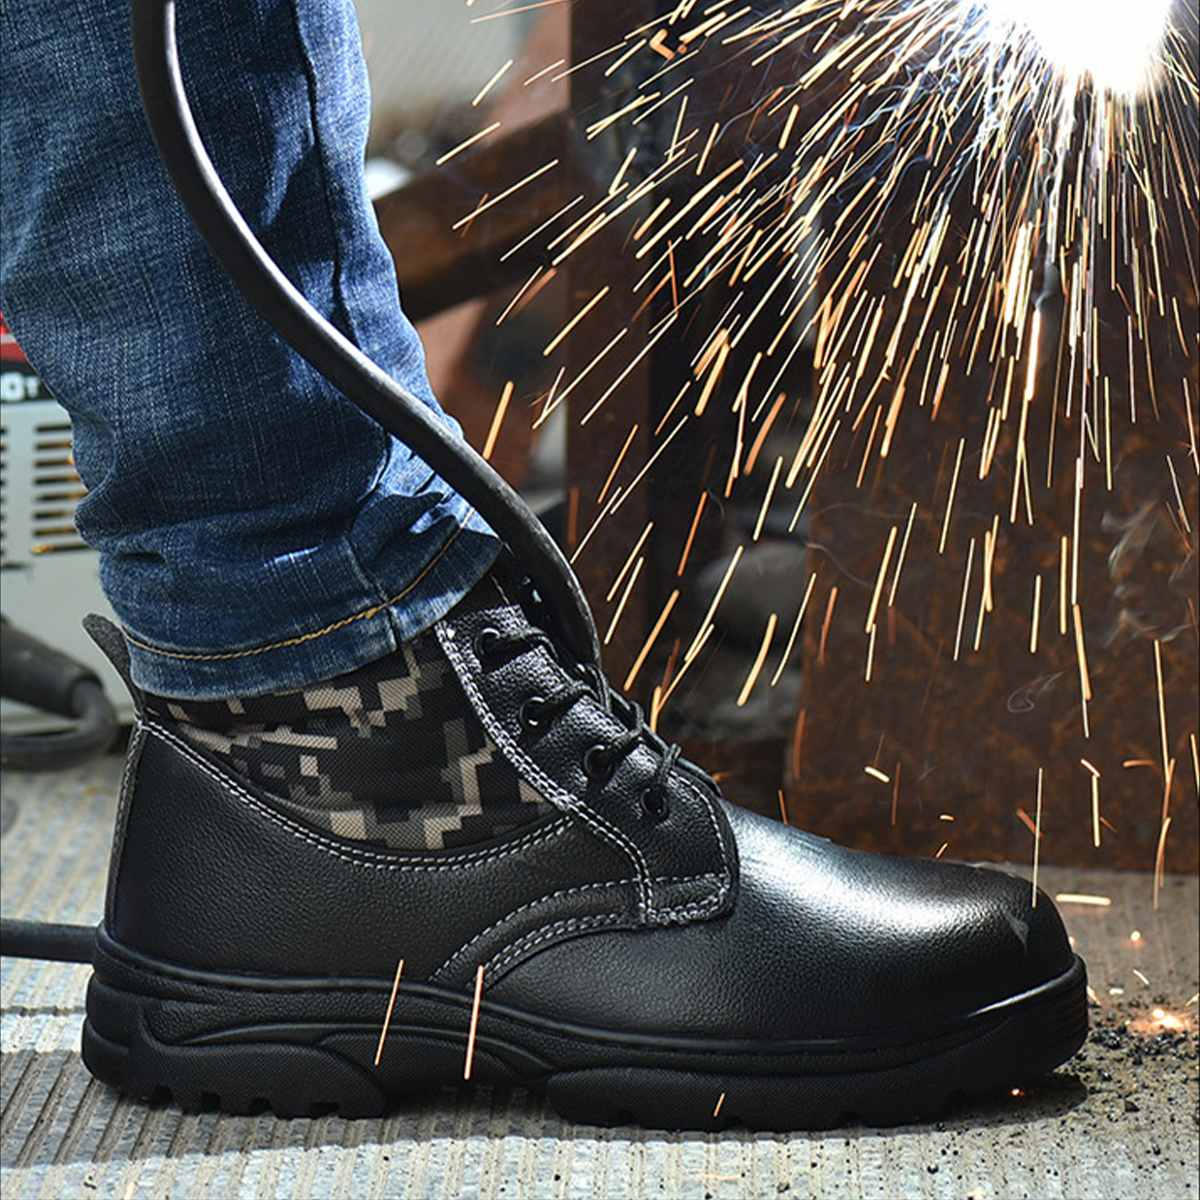 Camouflage Steel Toe Men Work Safety Shoes AtreGo Industrial Safety Workshoes Anti-puncture Anti-smashing Work Boots Hiking Sne